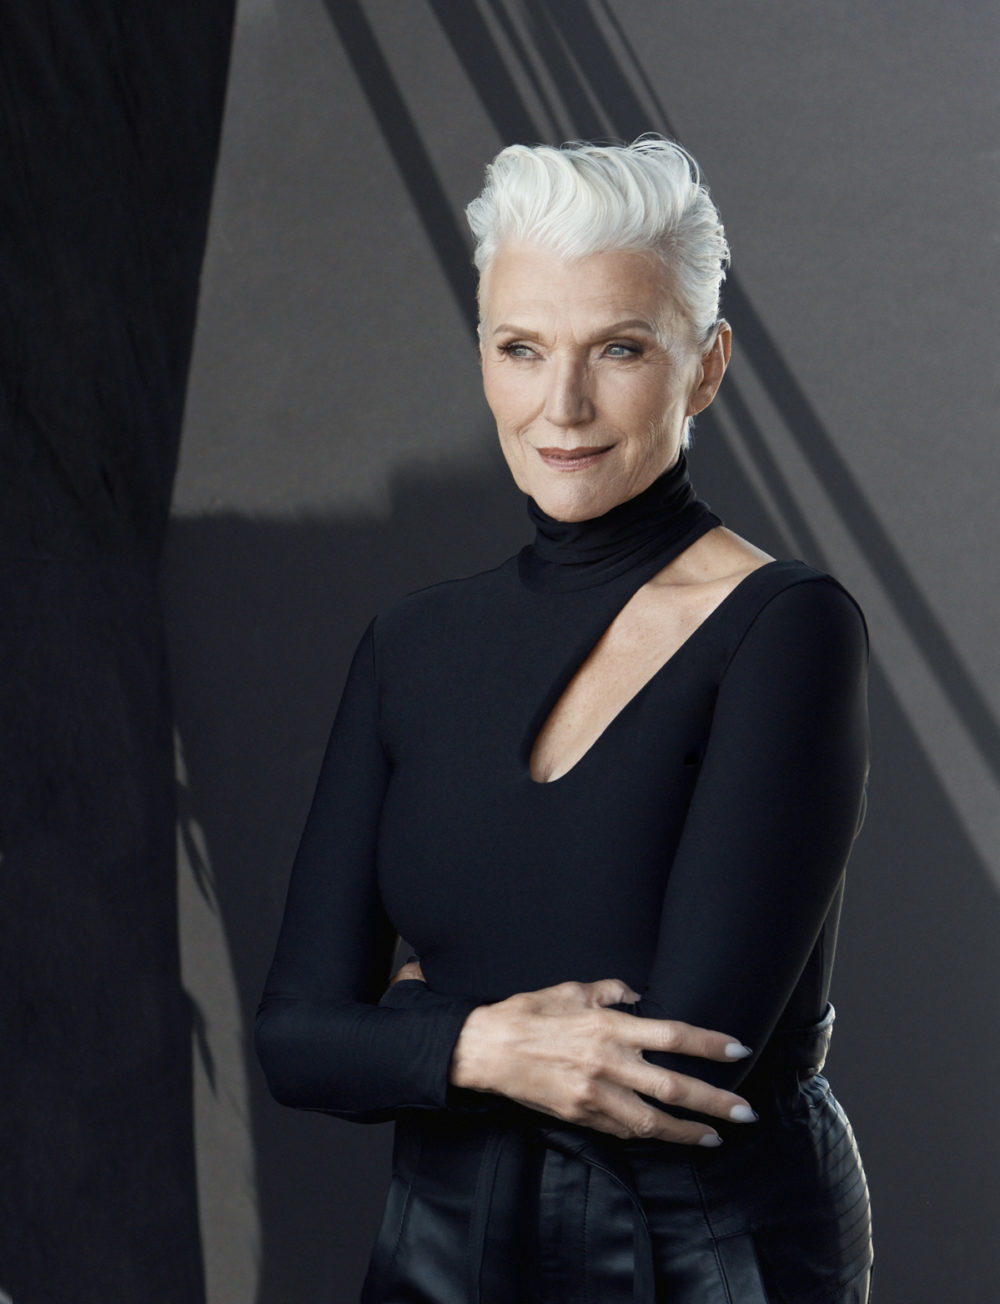 69-year-old model Maye Musk just booked another beauty gig